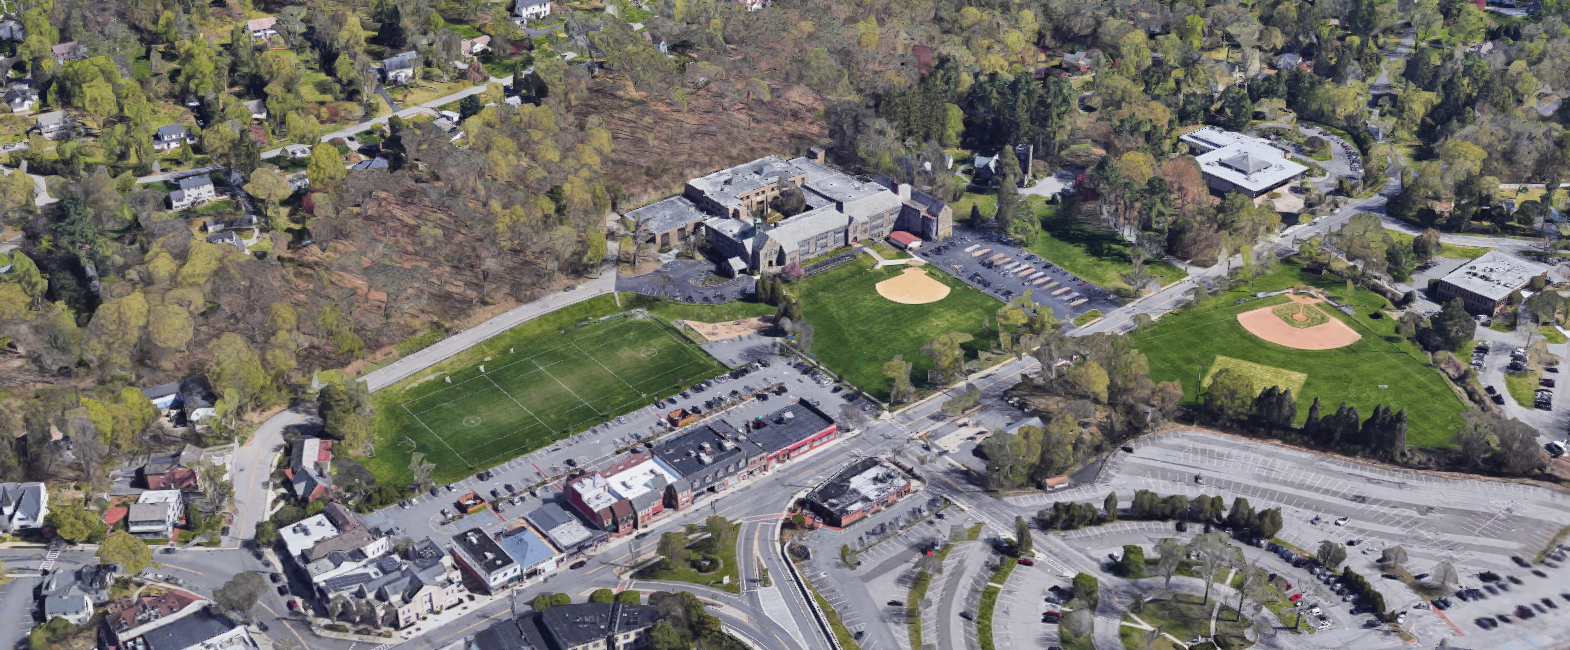 Robert E. Bell Middle School in Chappaqua Central School District in Chappaqua, New York